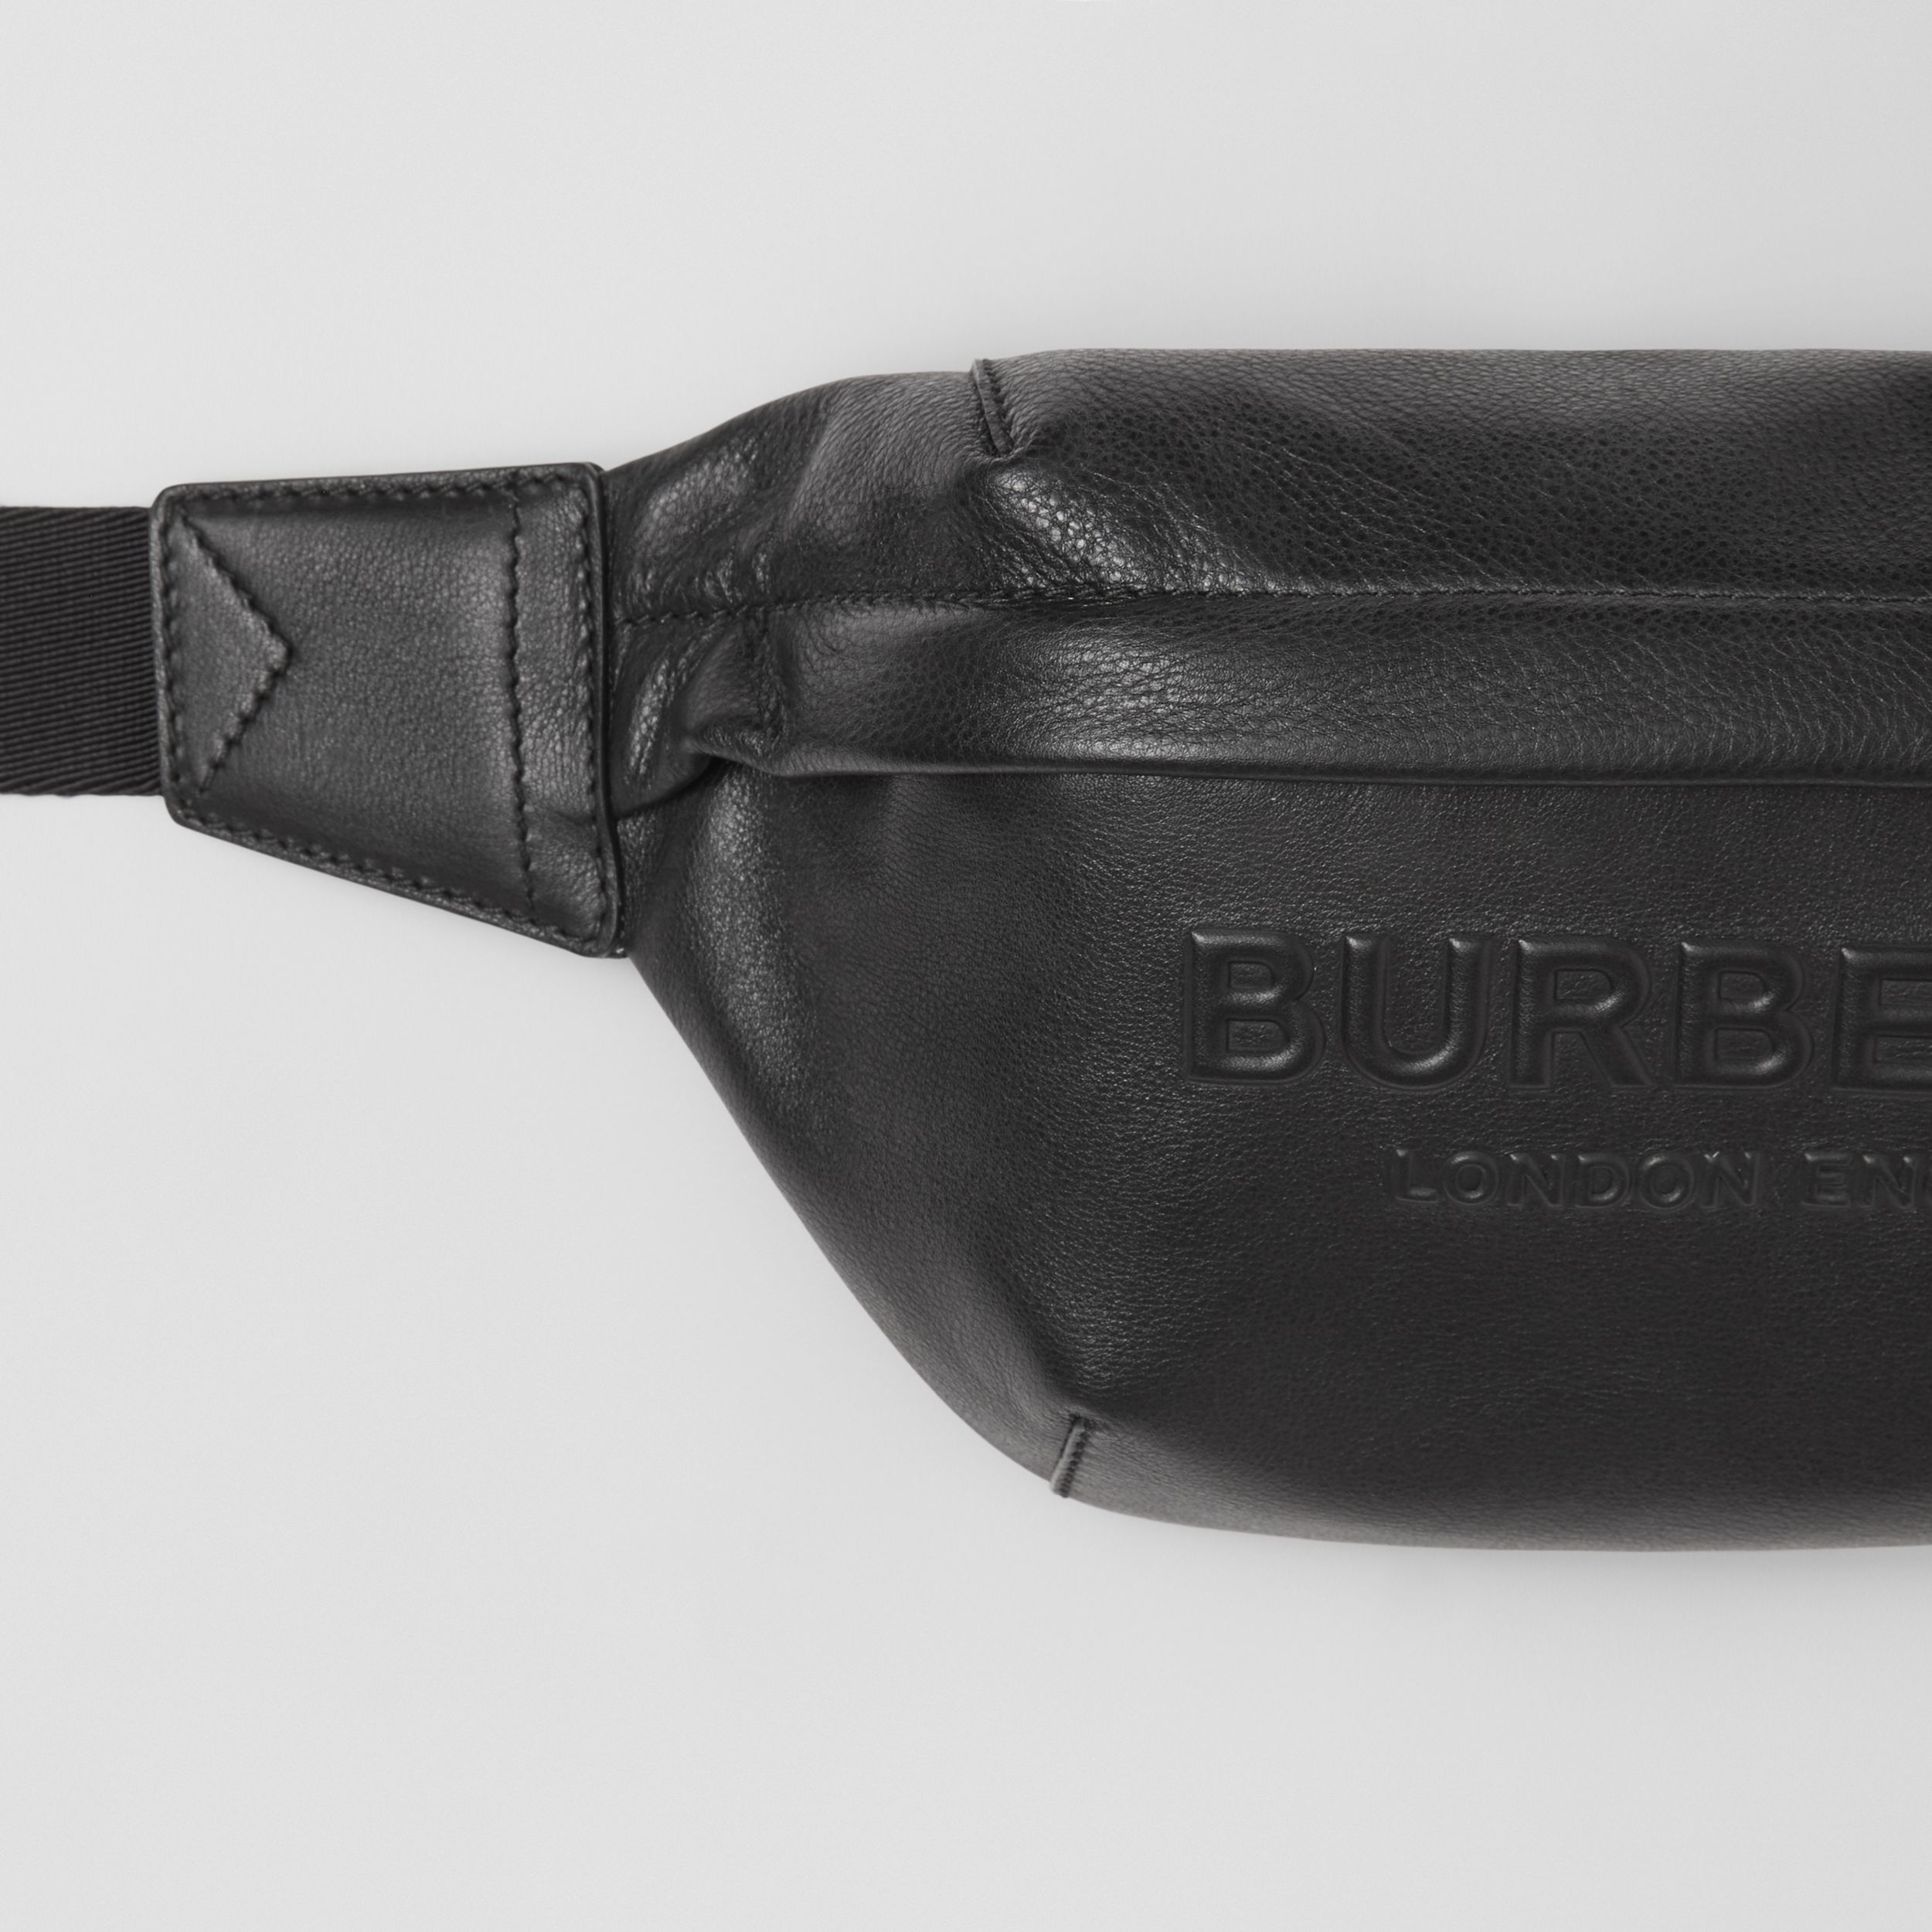 Logo Embossed Leather Sonny Bum Bag in Black - Men | Burberry - 2